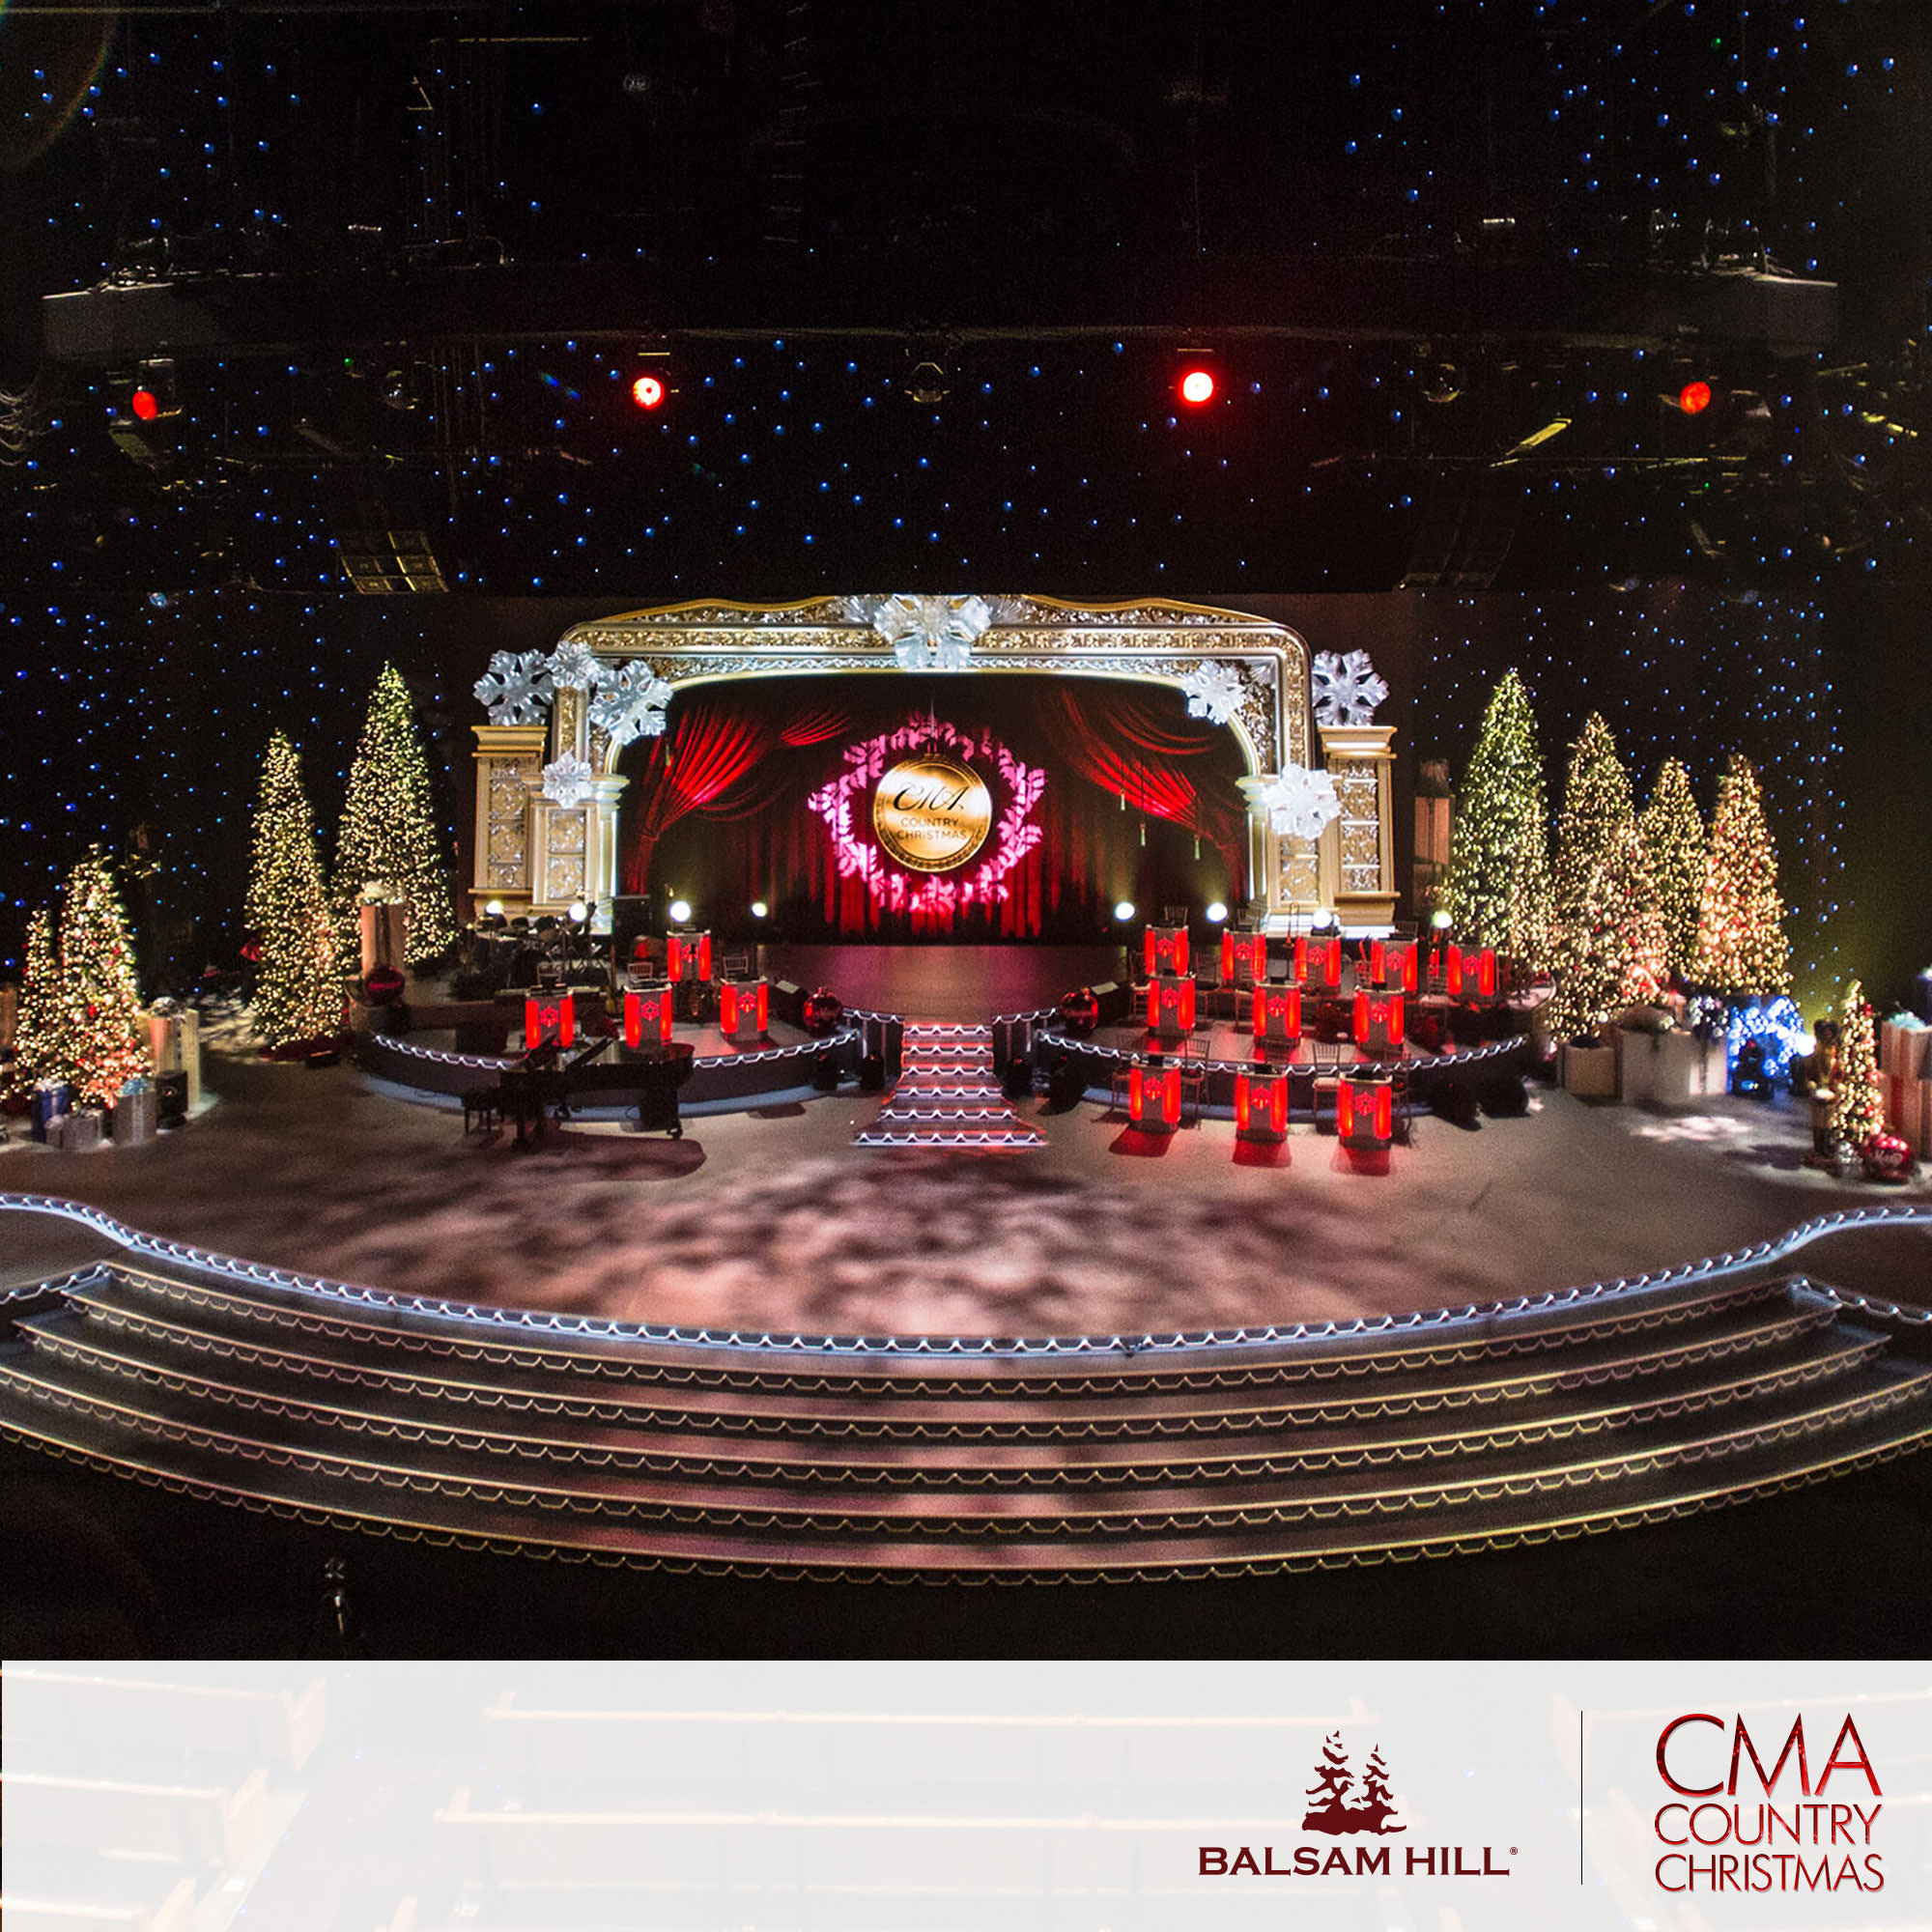 the balsam hill cma stage set up